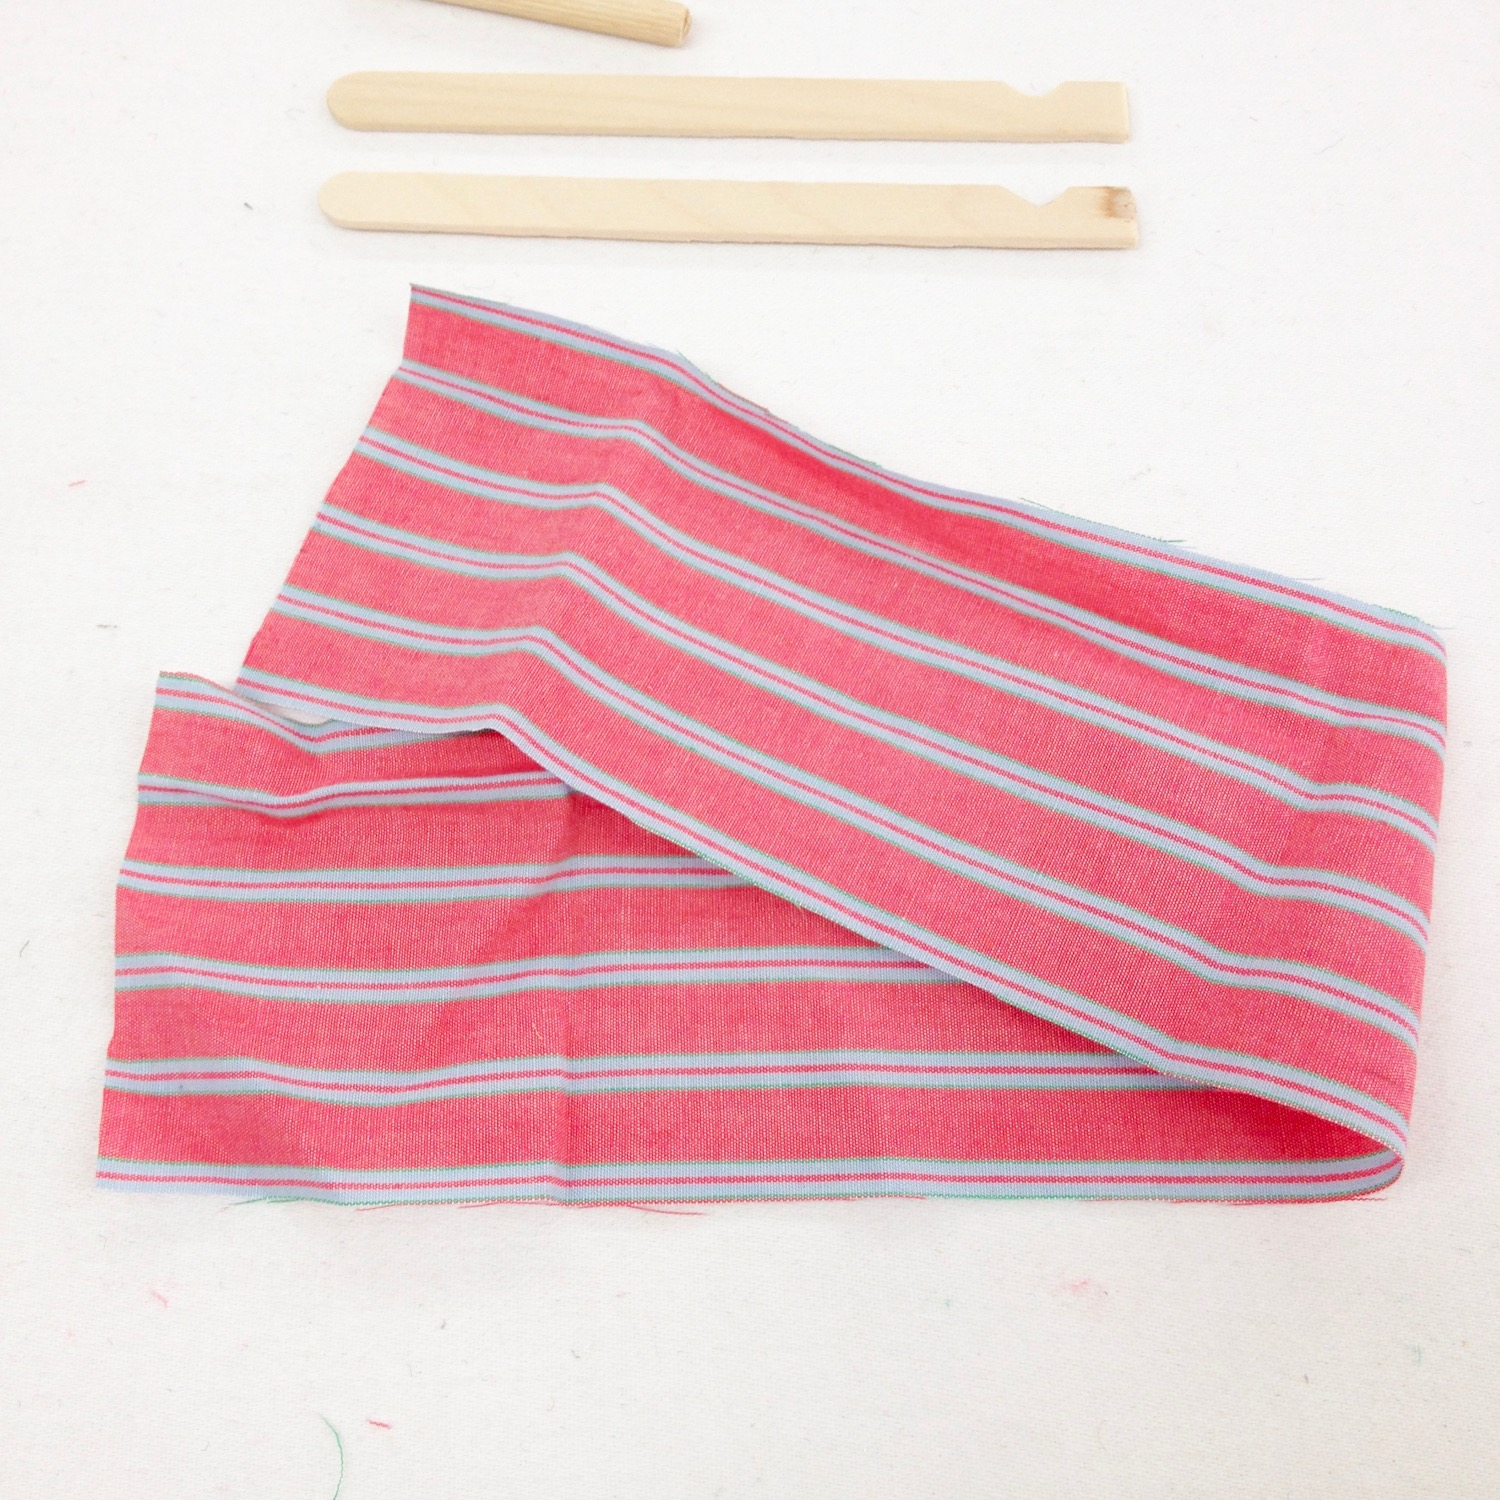 Cut a long strip of fabric, fold over the right side and sew. Leave gaps for dowels.